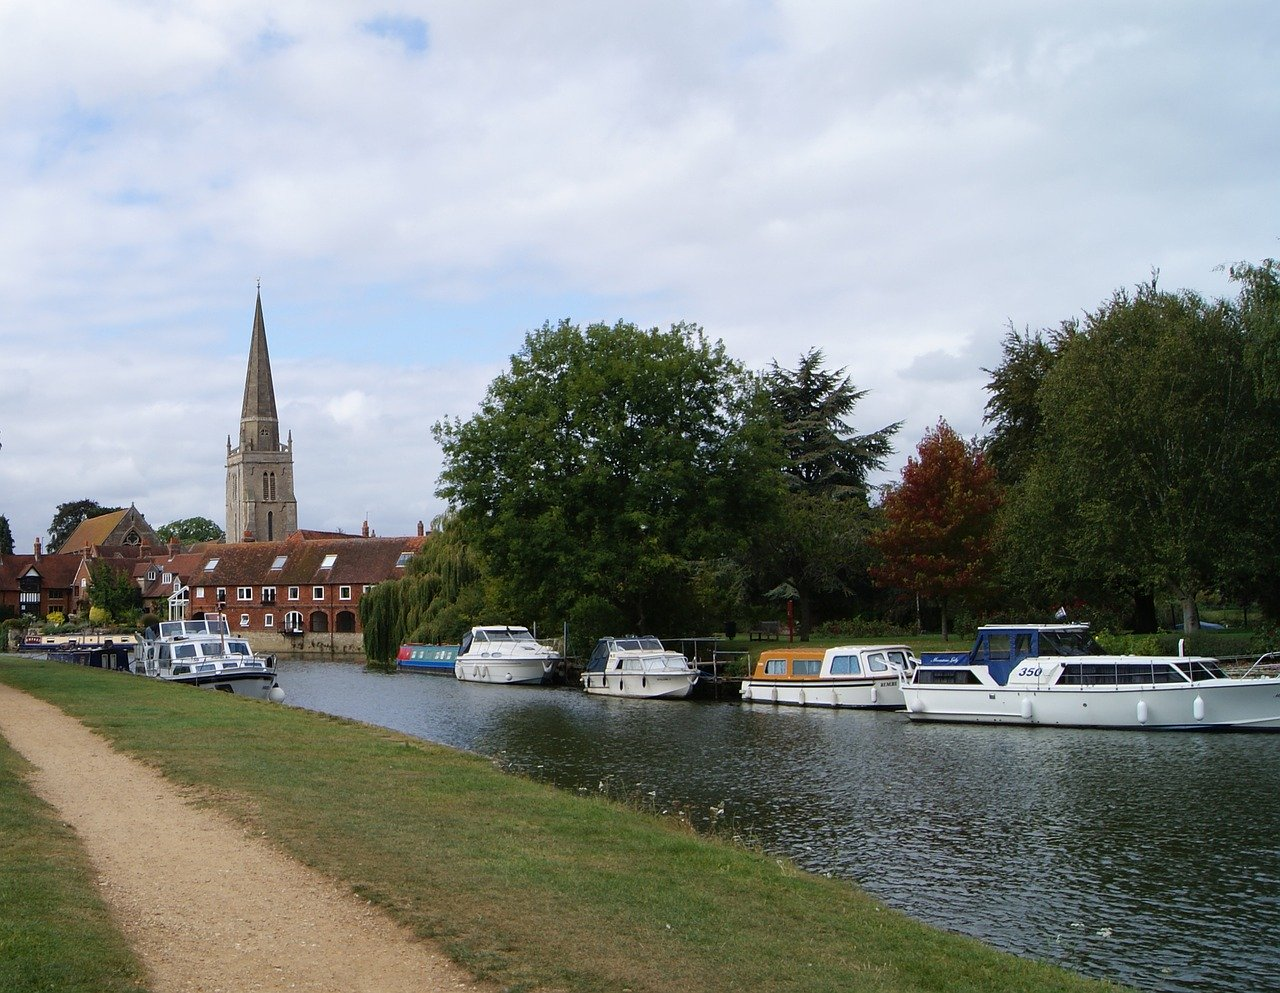 Abingdon is one of the off the beaten path things to see in Oxford